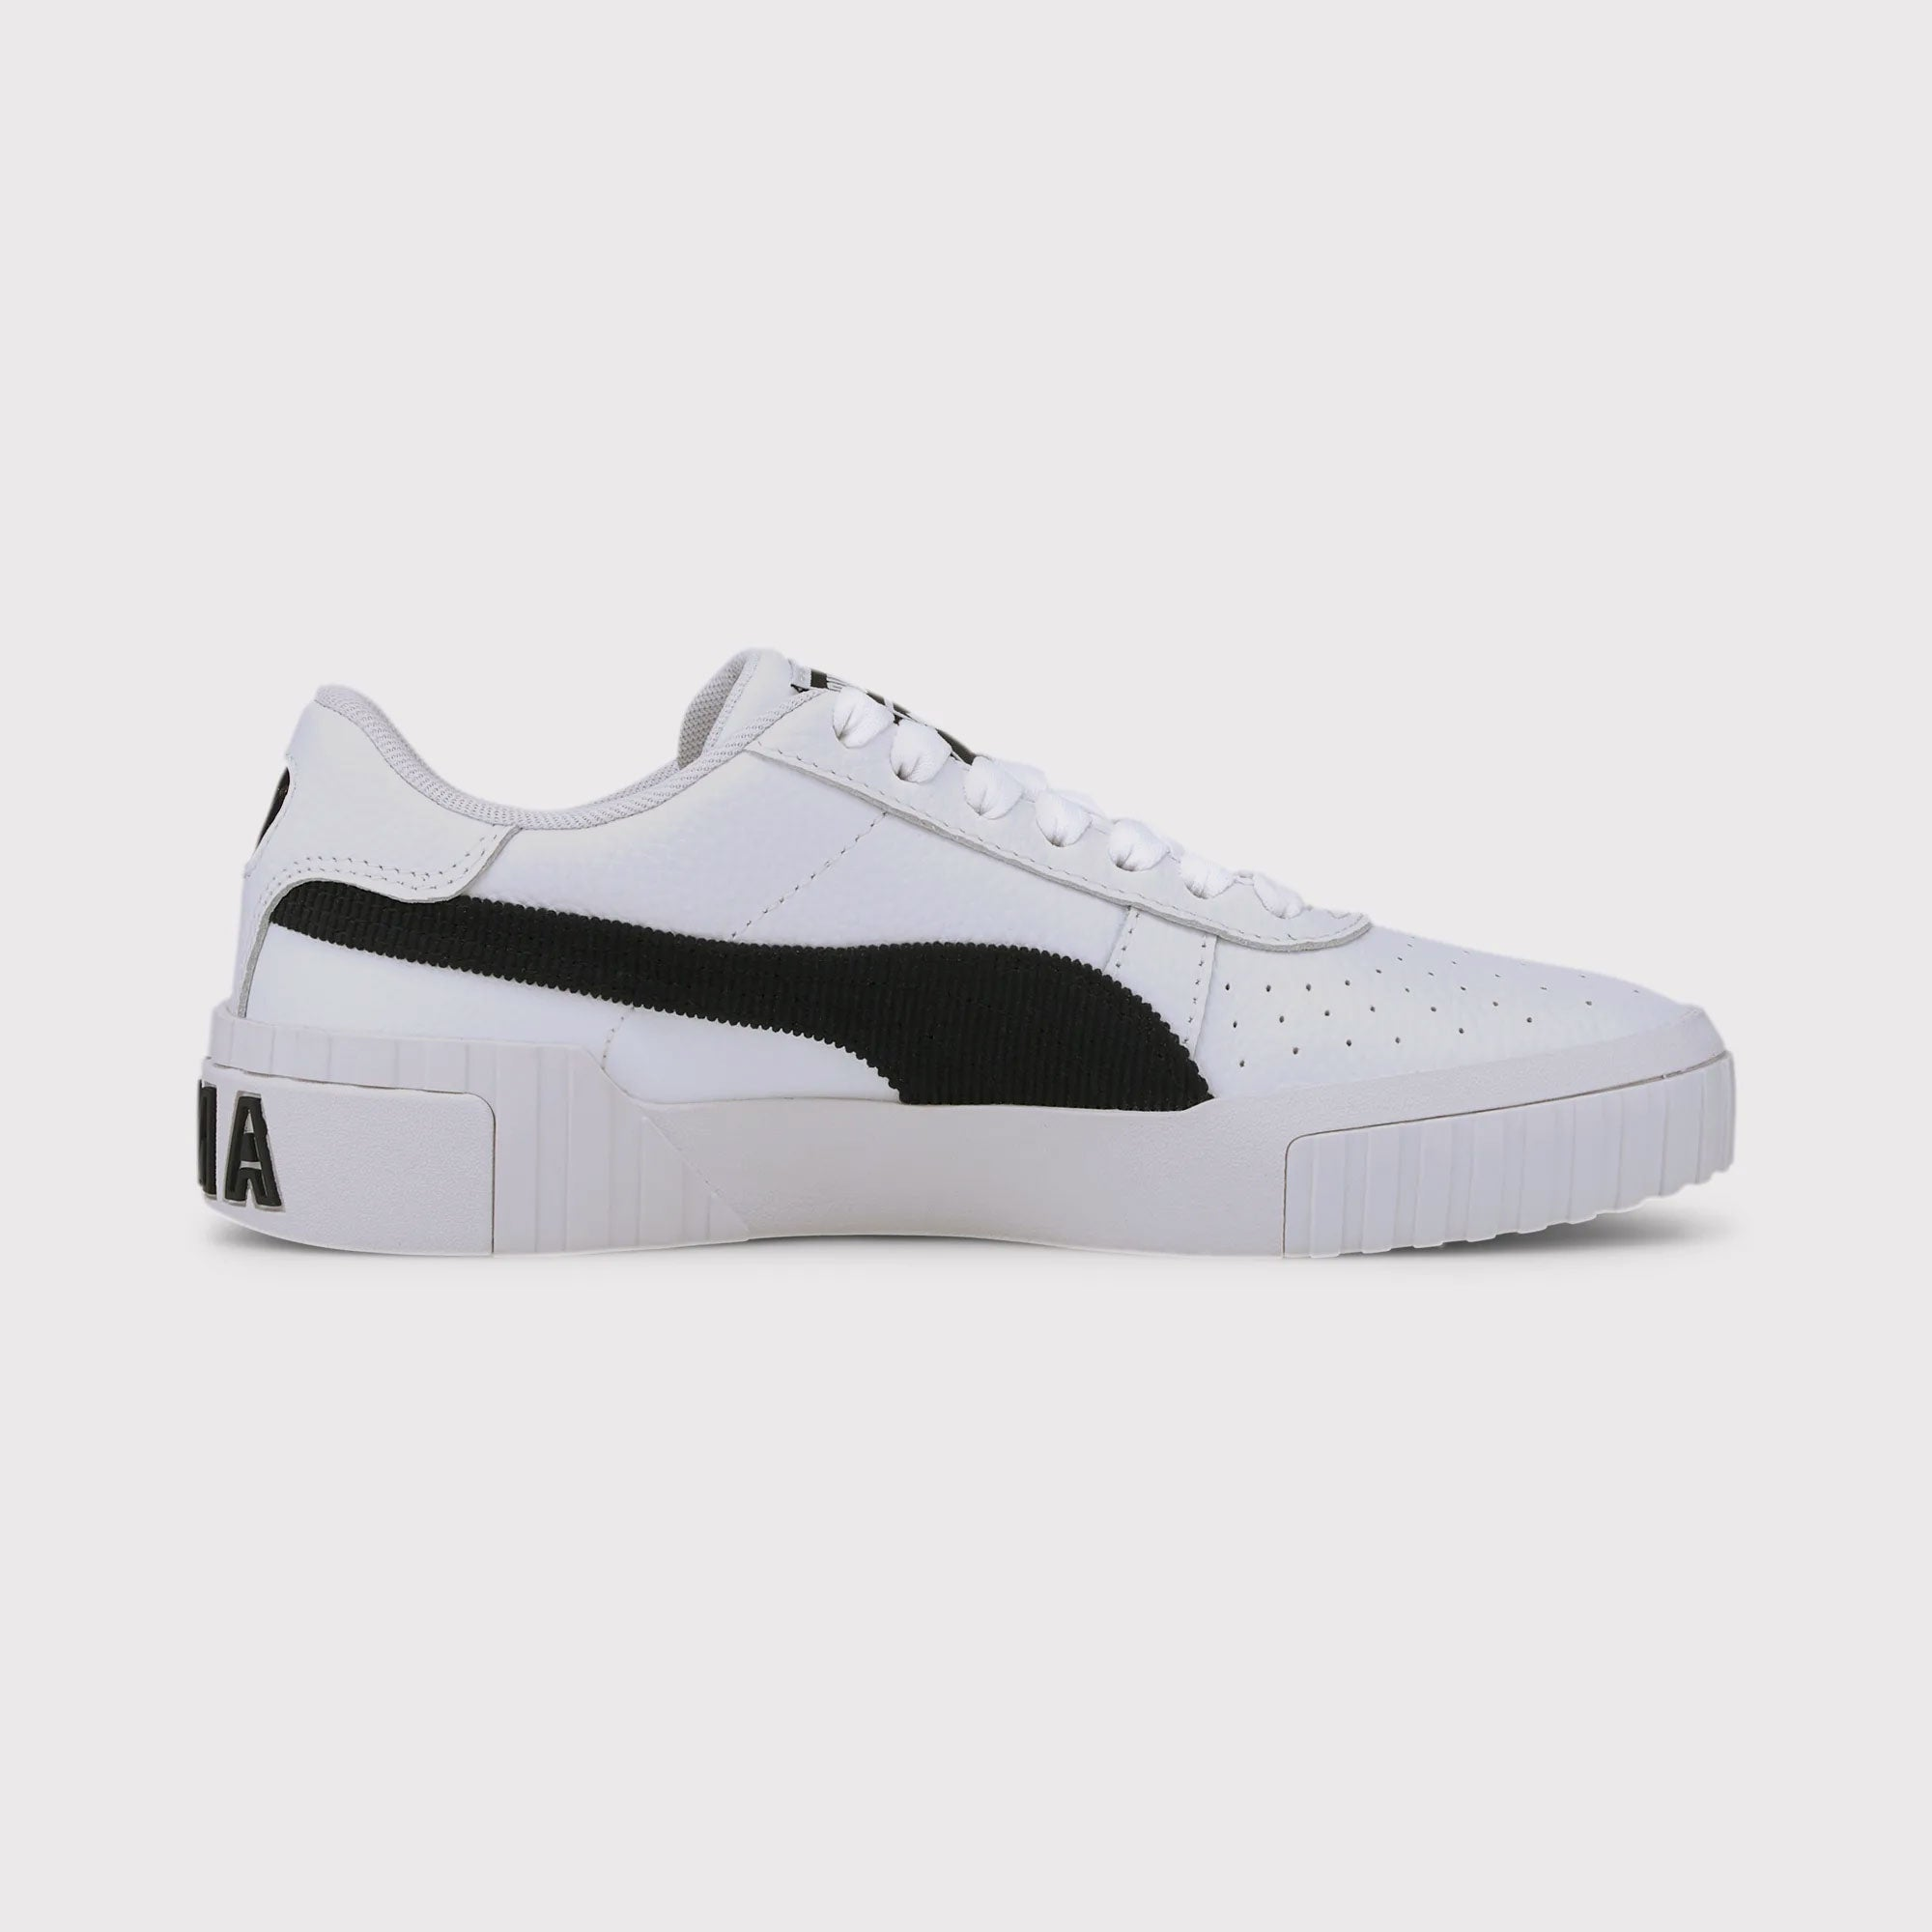 Puma Womens Cali Corduroy Sneakers - White/Black